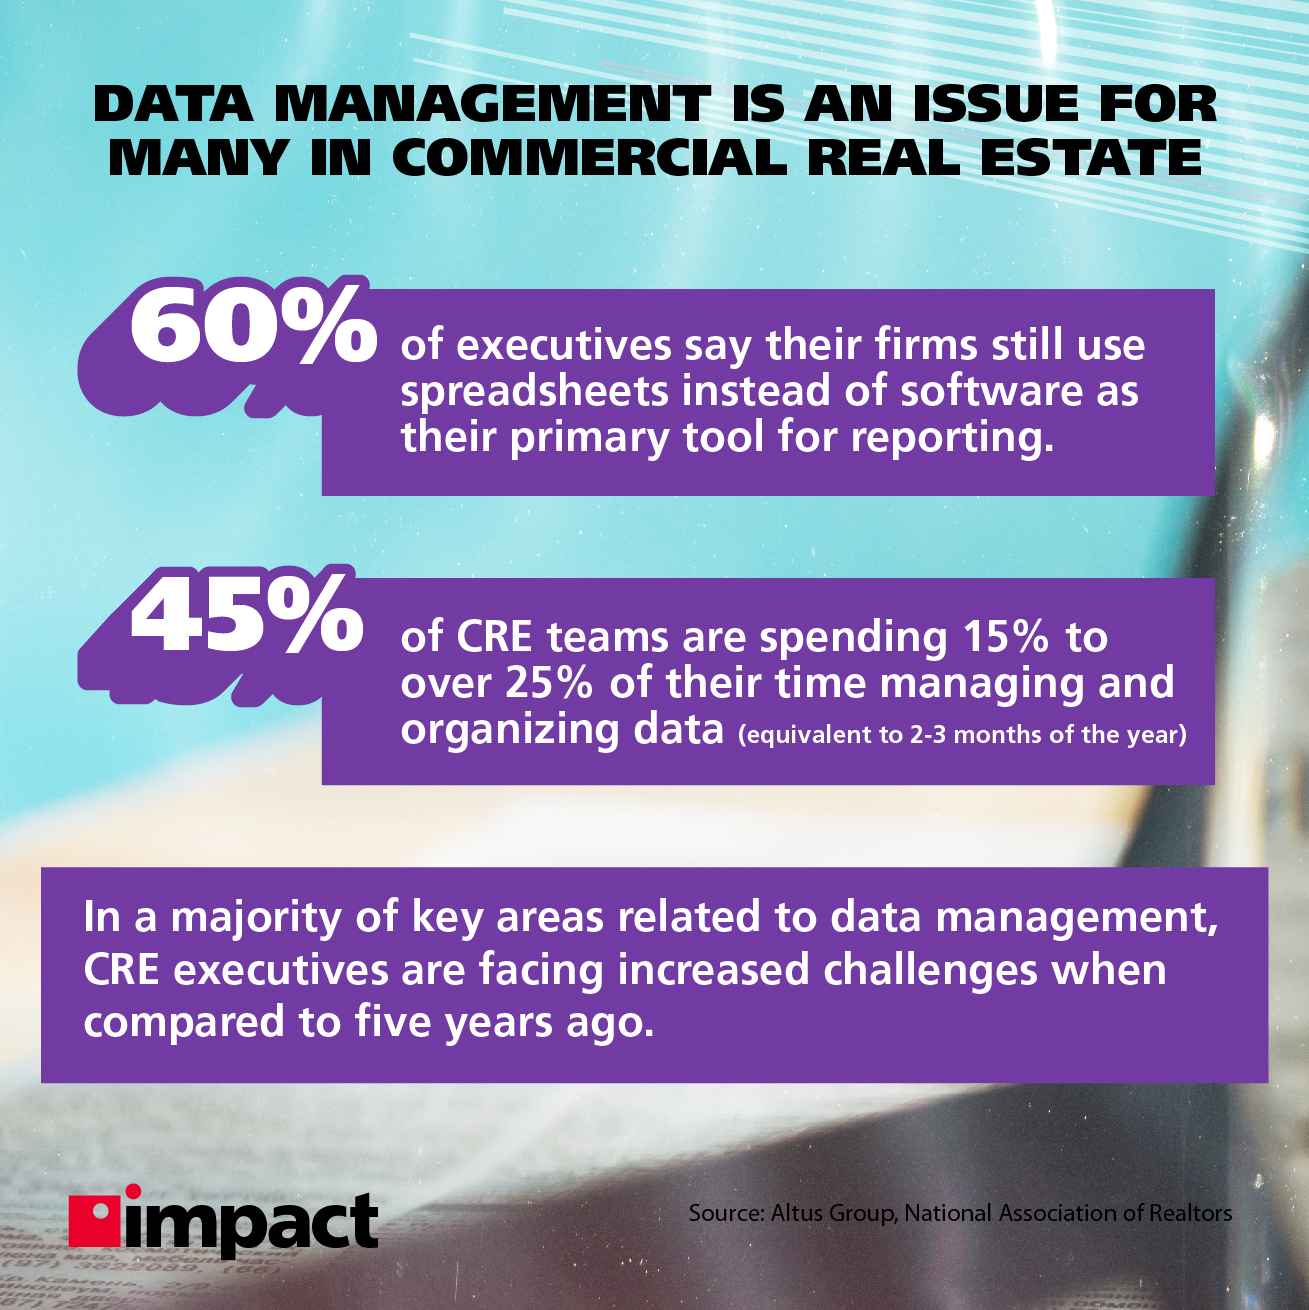 Data management is an issue for many in commercial real estate.